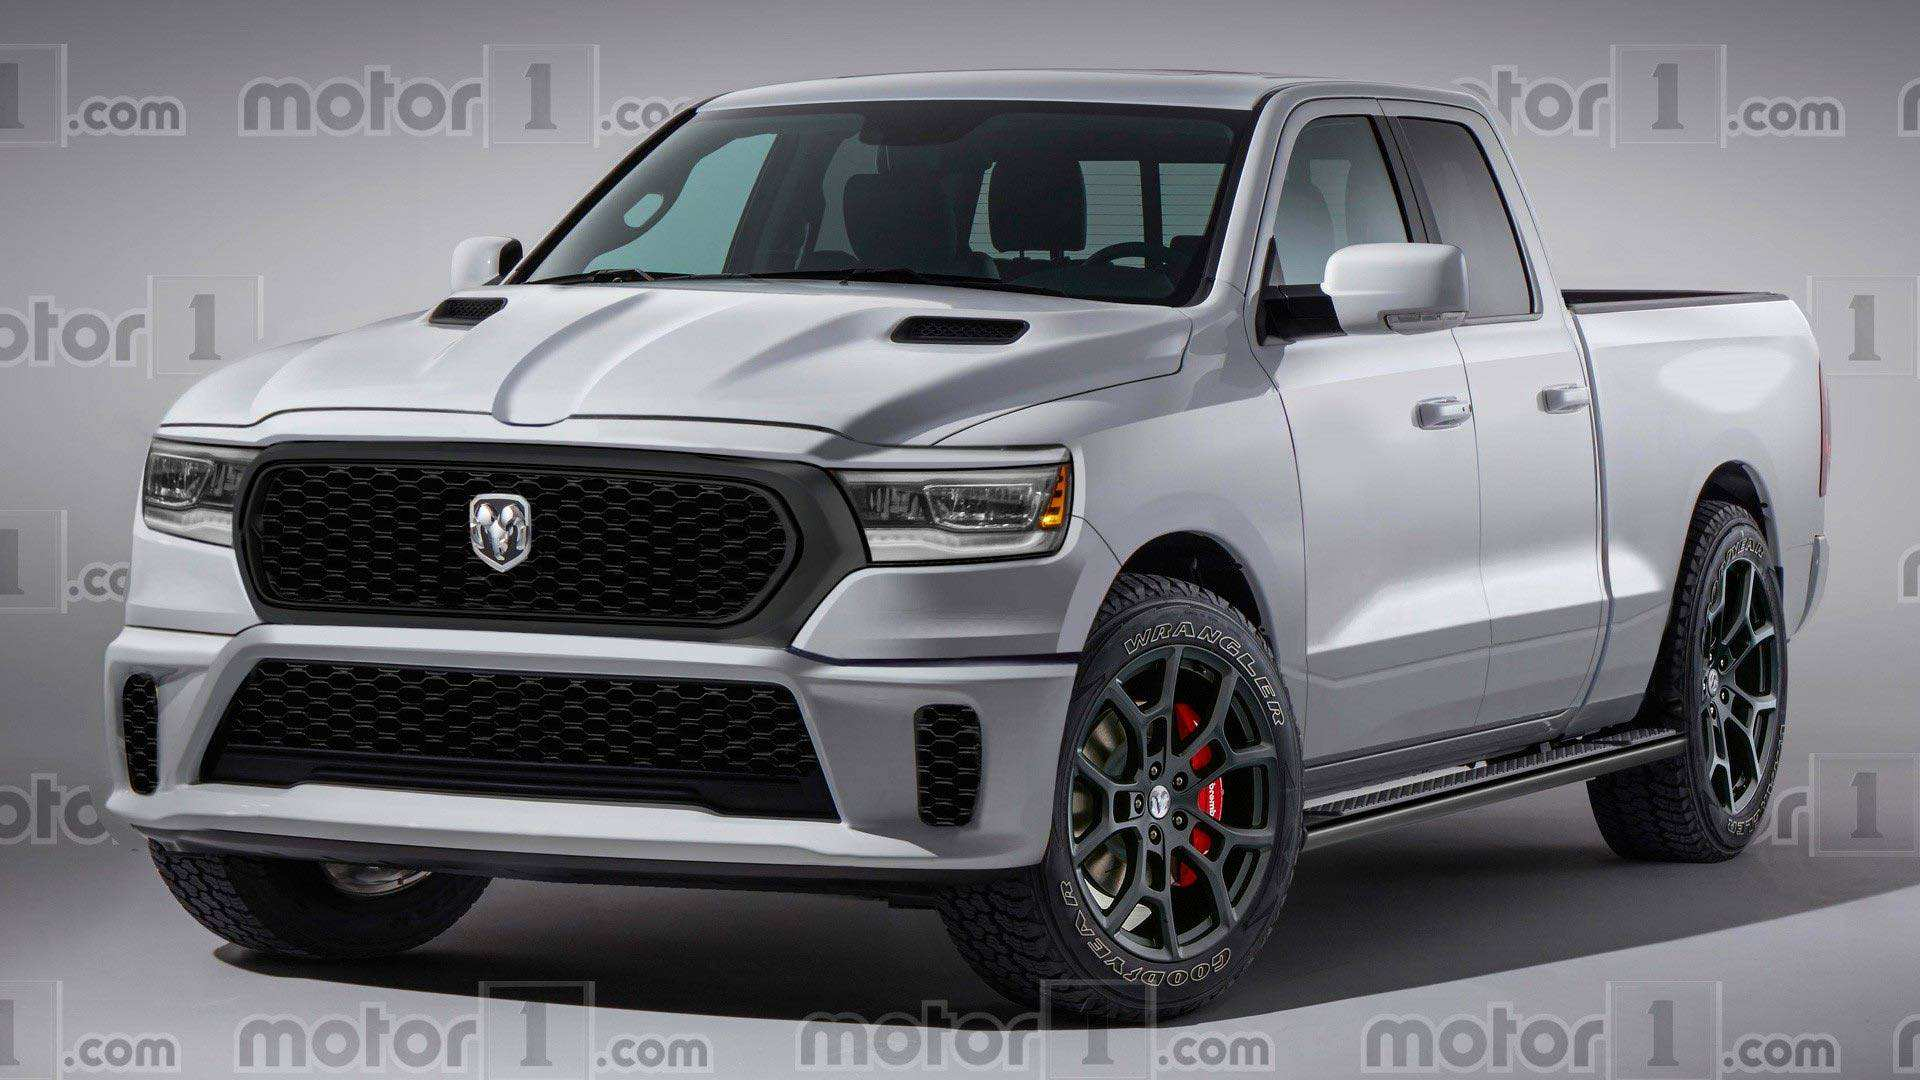 83 Best Review 2020 Dodge Ram 1500 Prices with 2020 Dodge Ram 1500